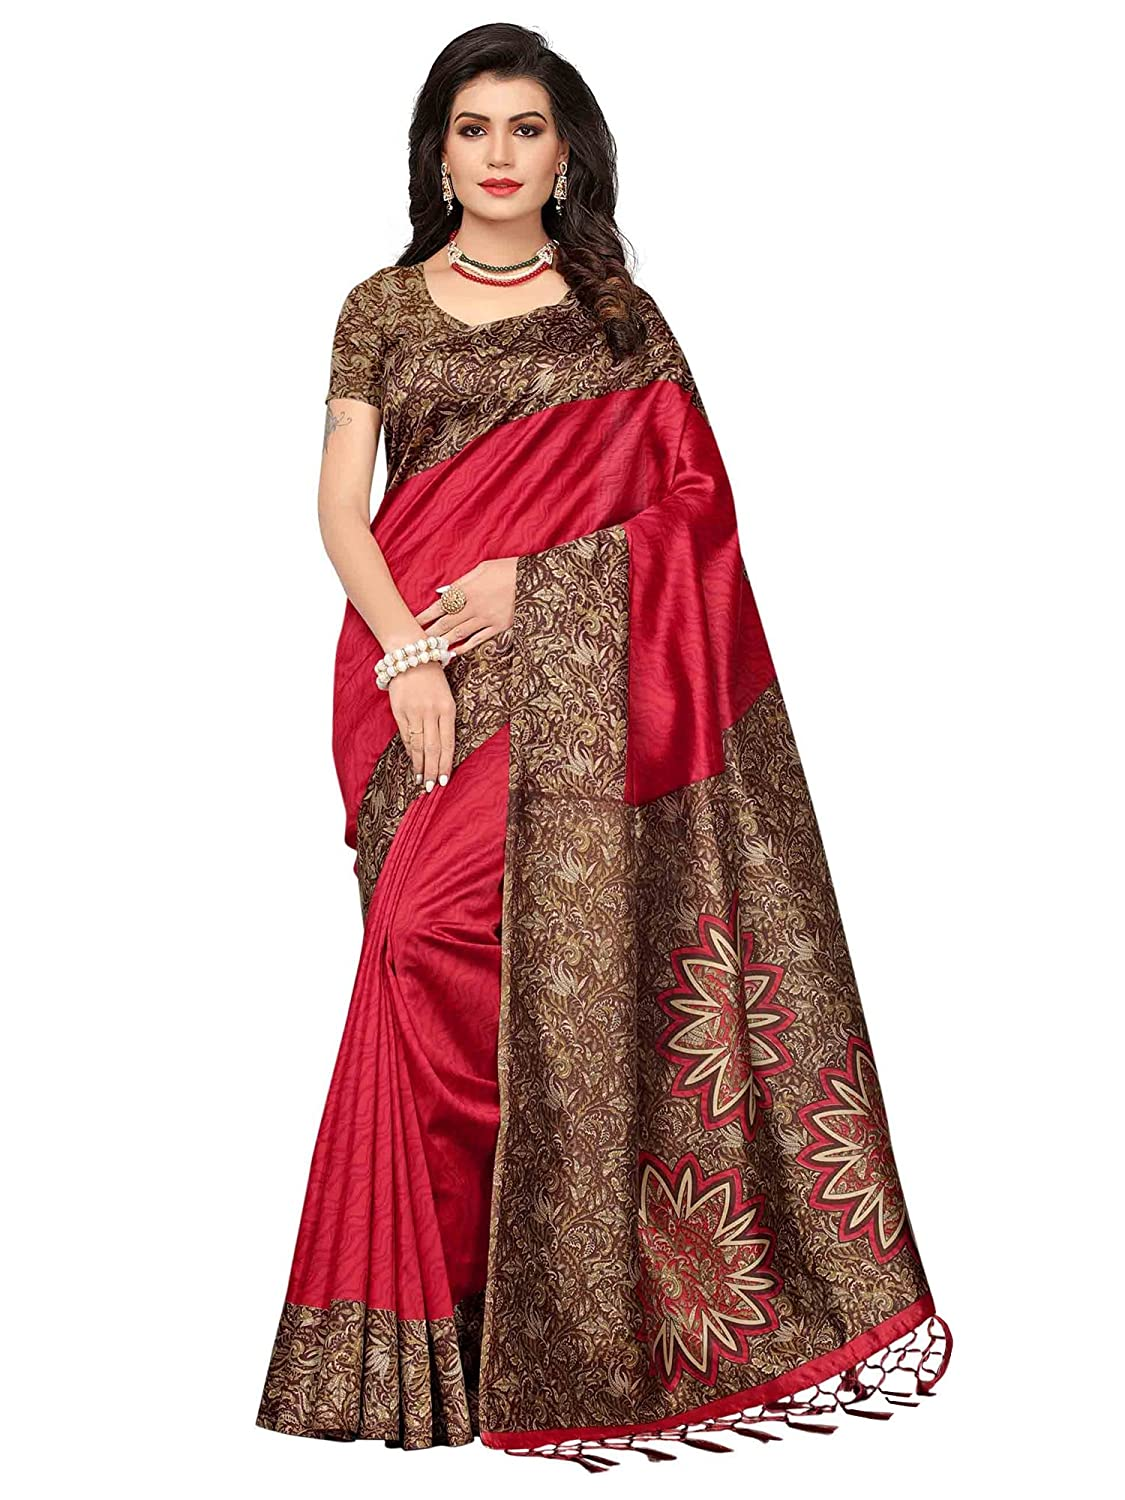 Mrinalika Fashion Women's Art Silk Saree With Blouse Piece (Srja006_Red)